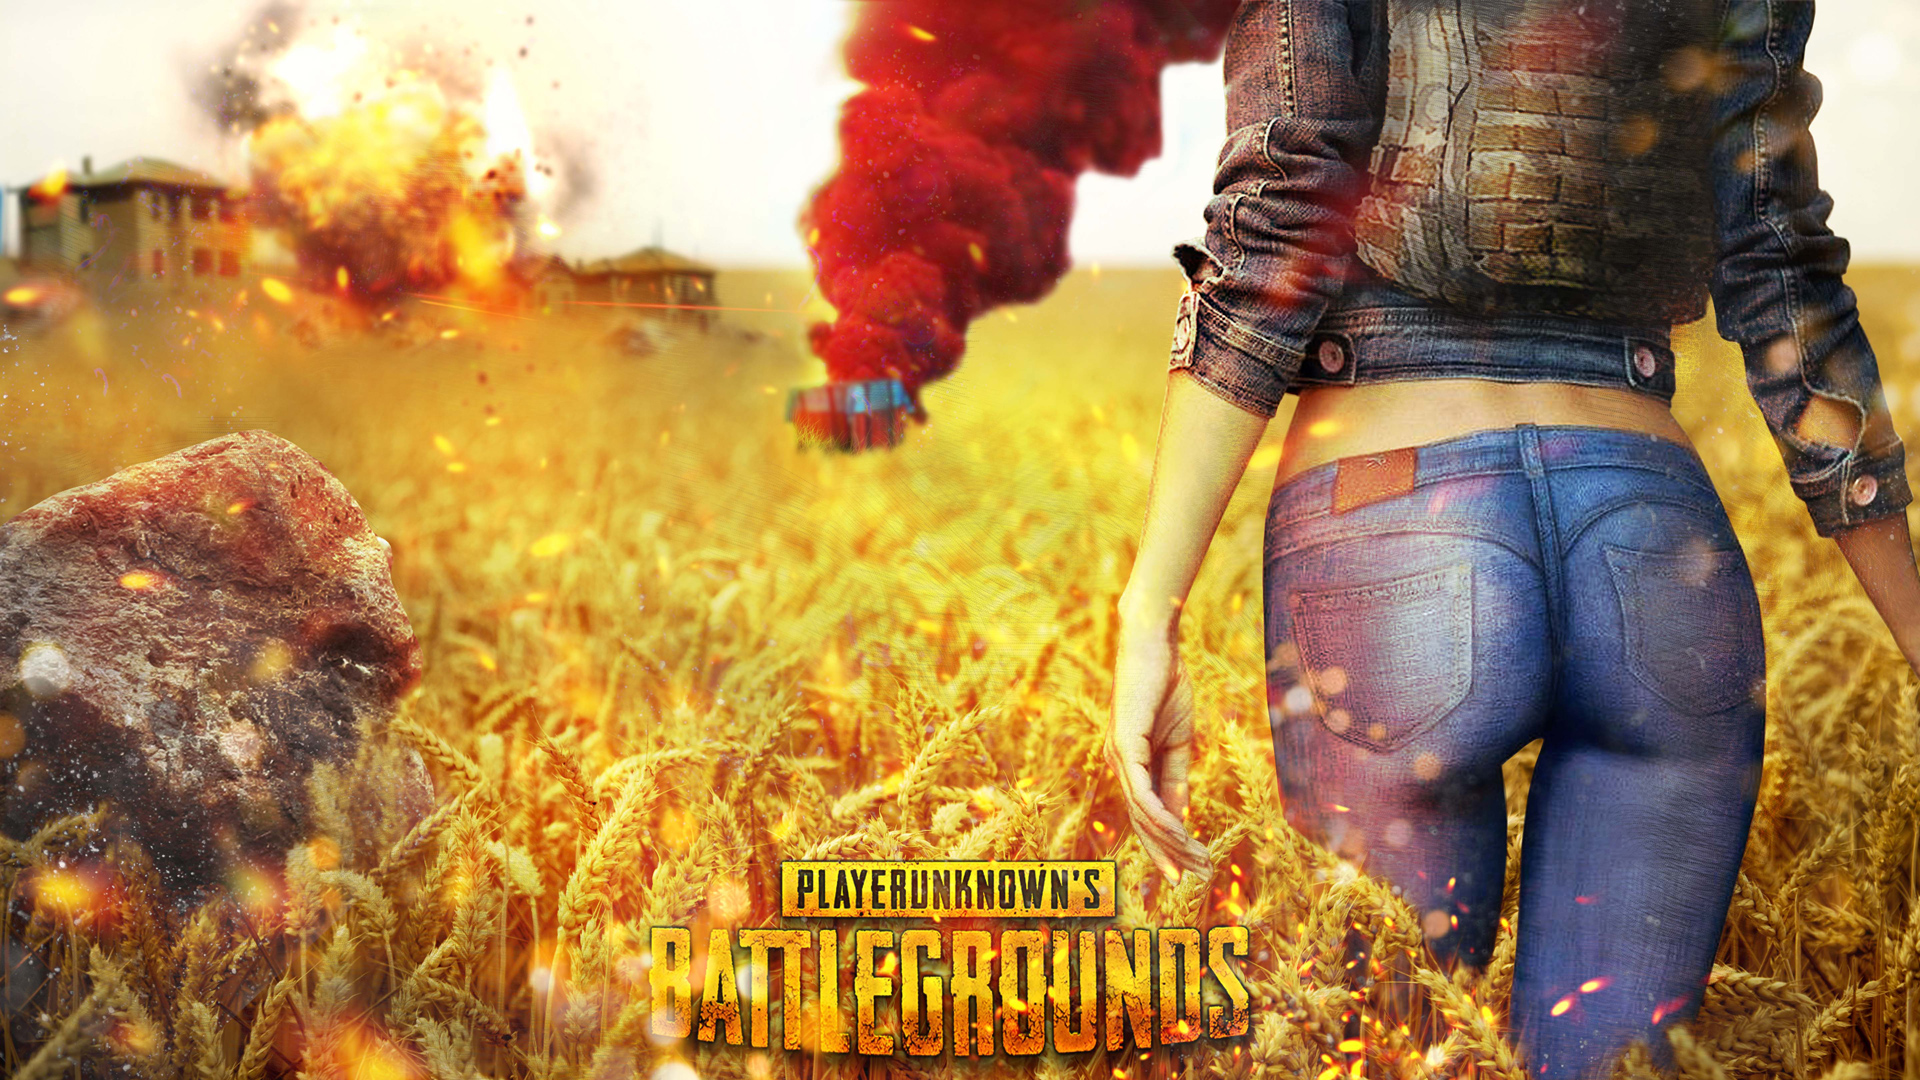 Top 13 Pubg Wallpapers In Full Hd For Pc And Phone: 1920x1080 Playerunknowns Battlegrounds 1080P Laptop Full